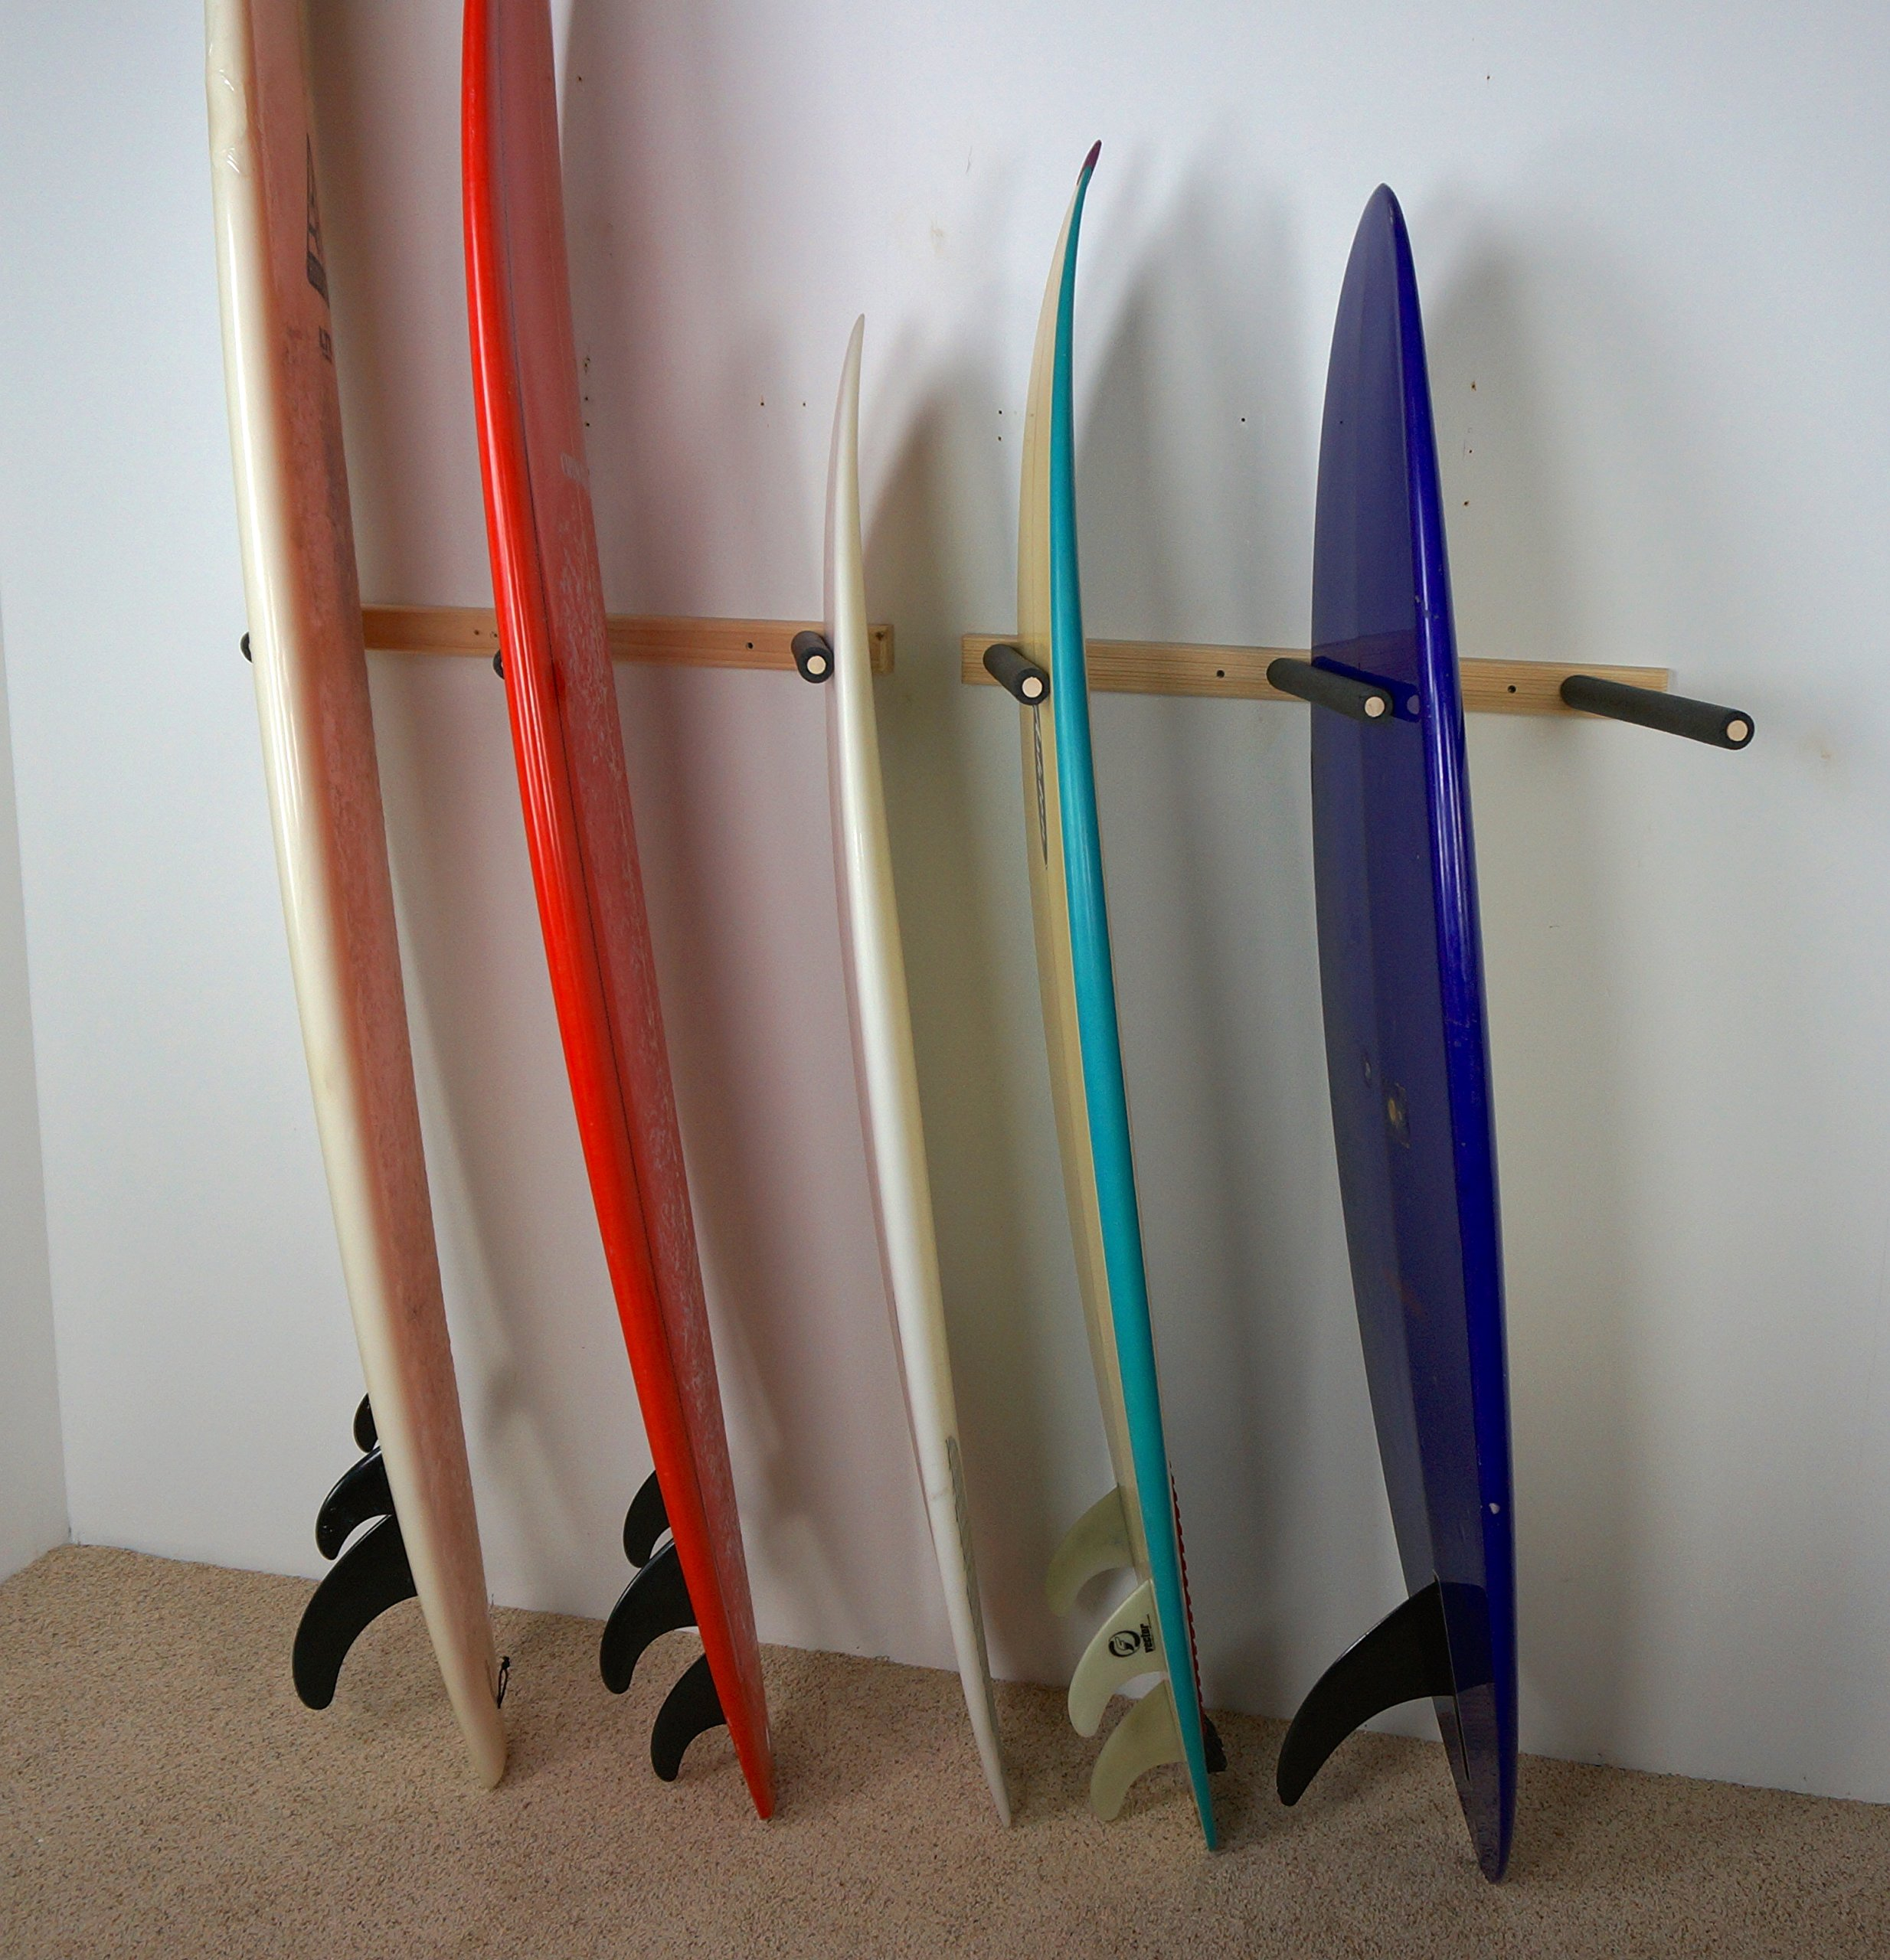 board improved storage surfboard garage hanger keeper sports strap rack com sup wall outdoors amazon boat dp